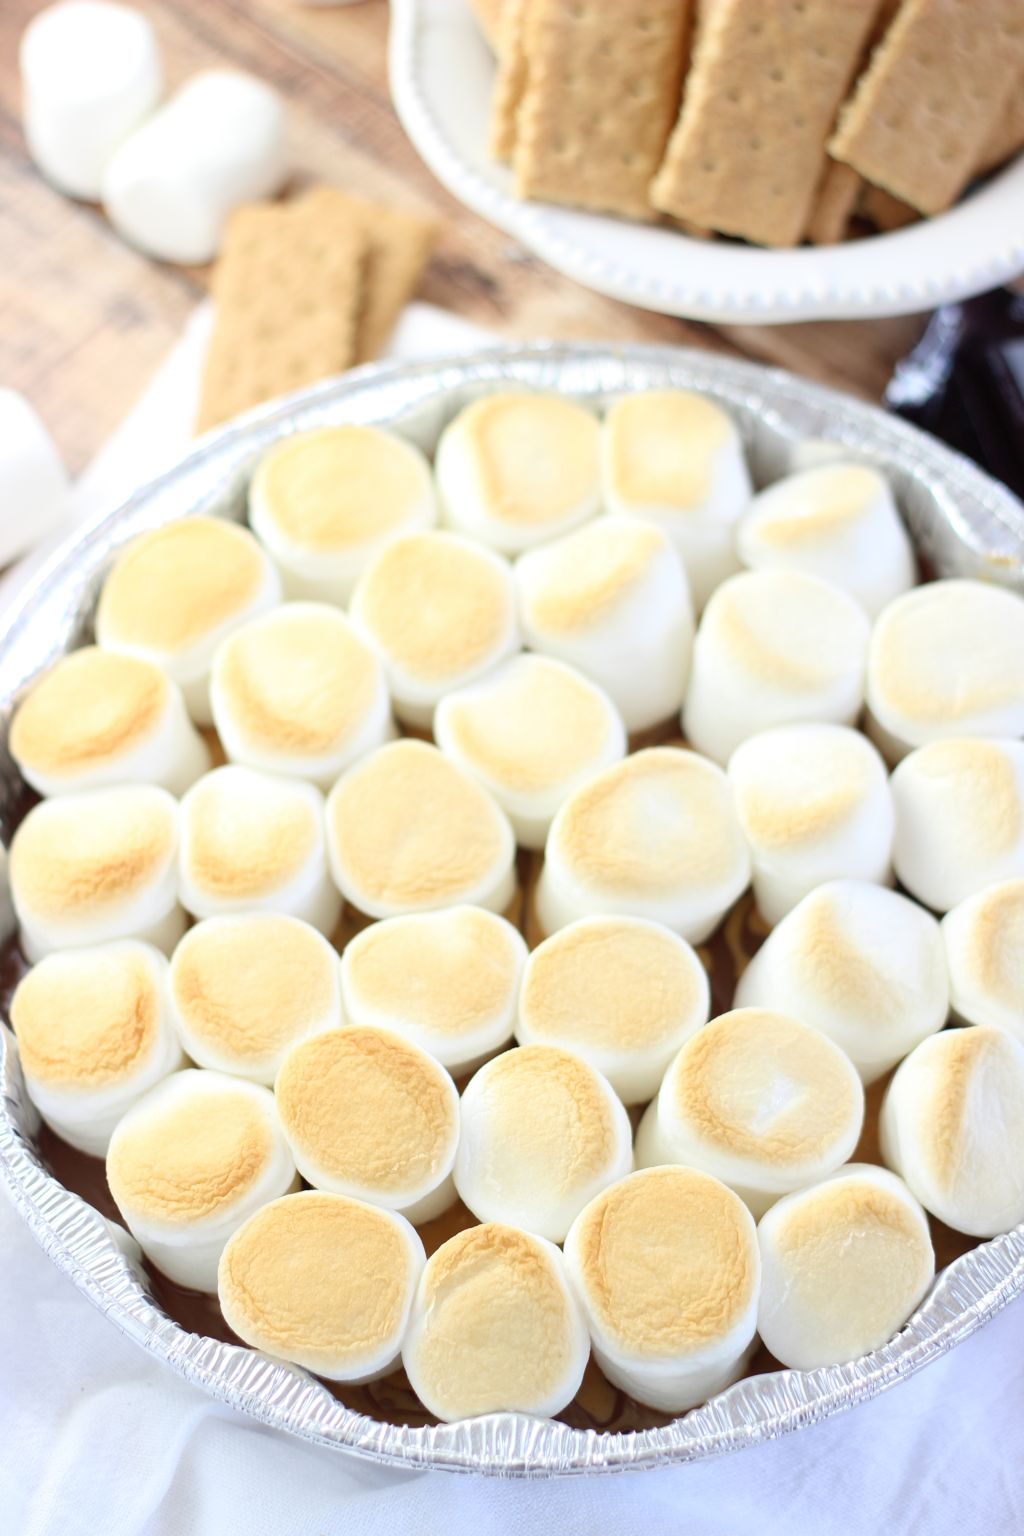 10-minute Peanut Butter S'mores Dip